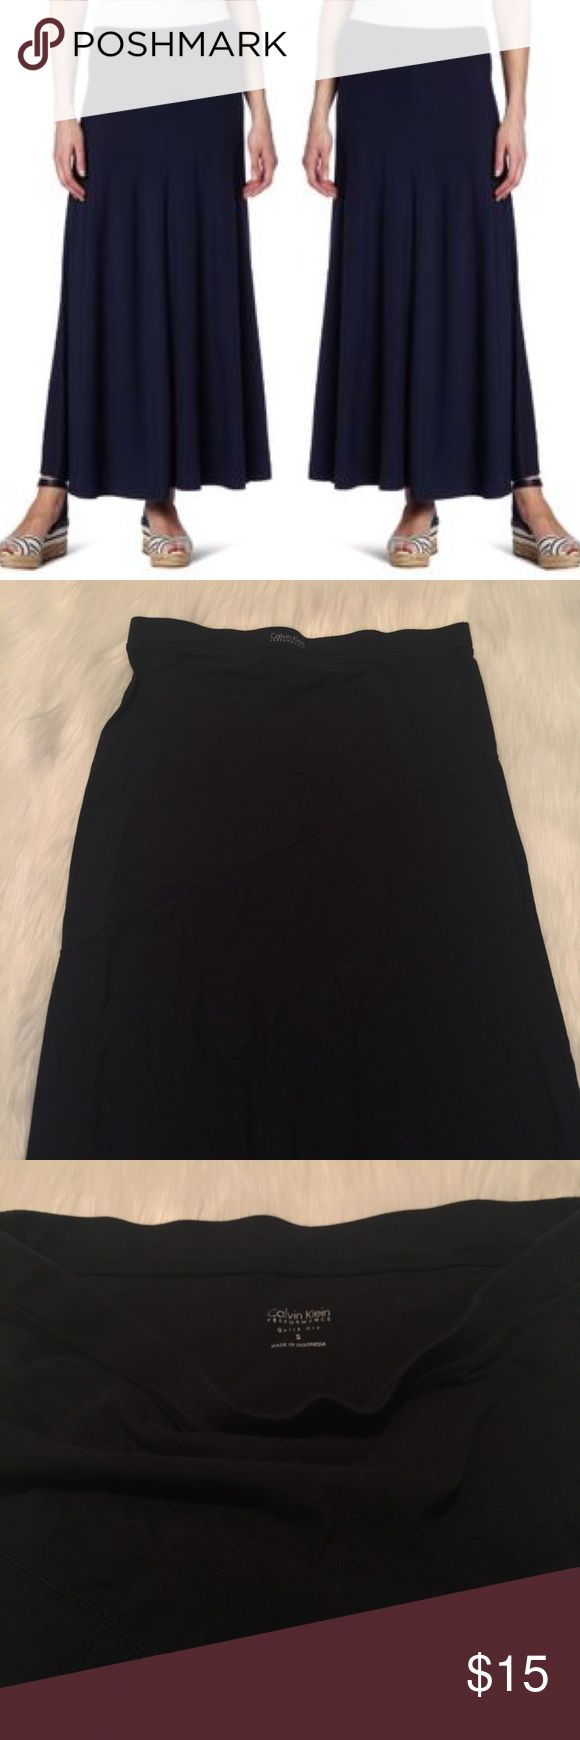 Calvin Klein Performance Maxi Skirt This maxi skirt has dry wick material making it super comfy on hot days! Flattering waistline and a jersey knit type of feel with some stretch. Navy blue, never worn. Fits more like a medium IMO. Calvin Klein Skirts Maxi